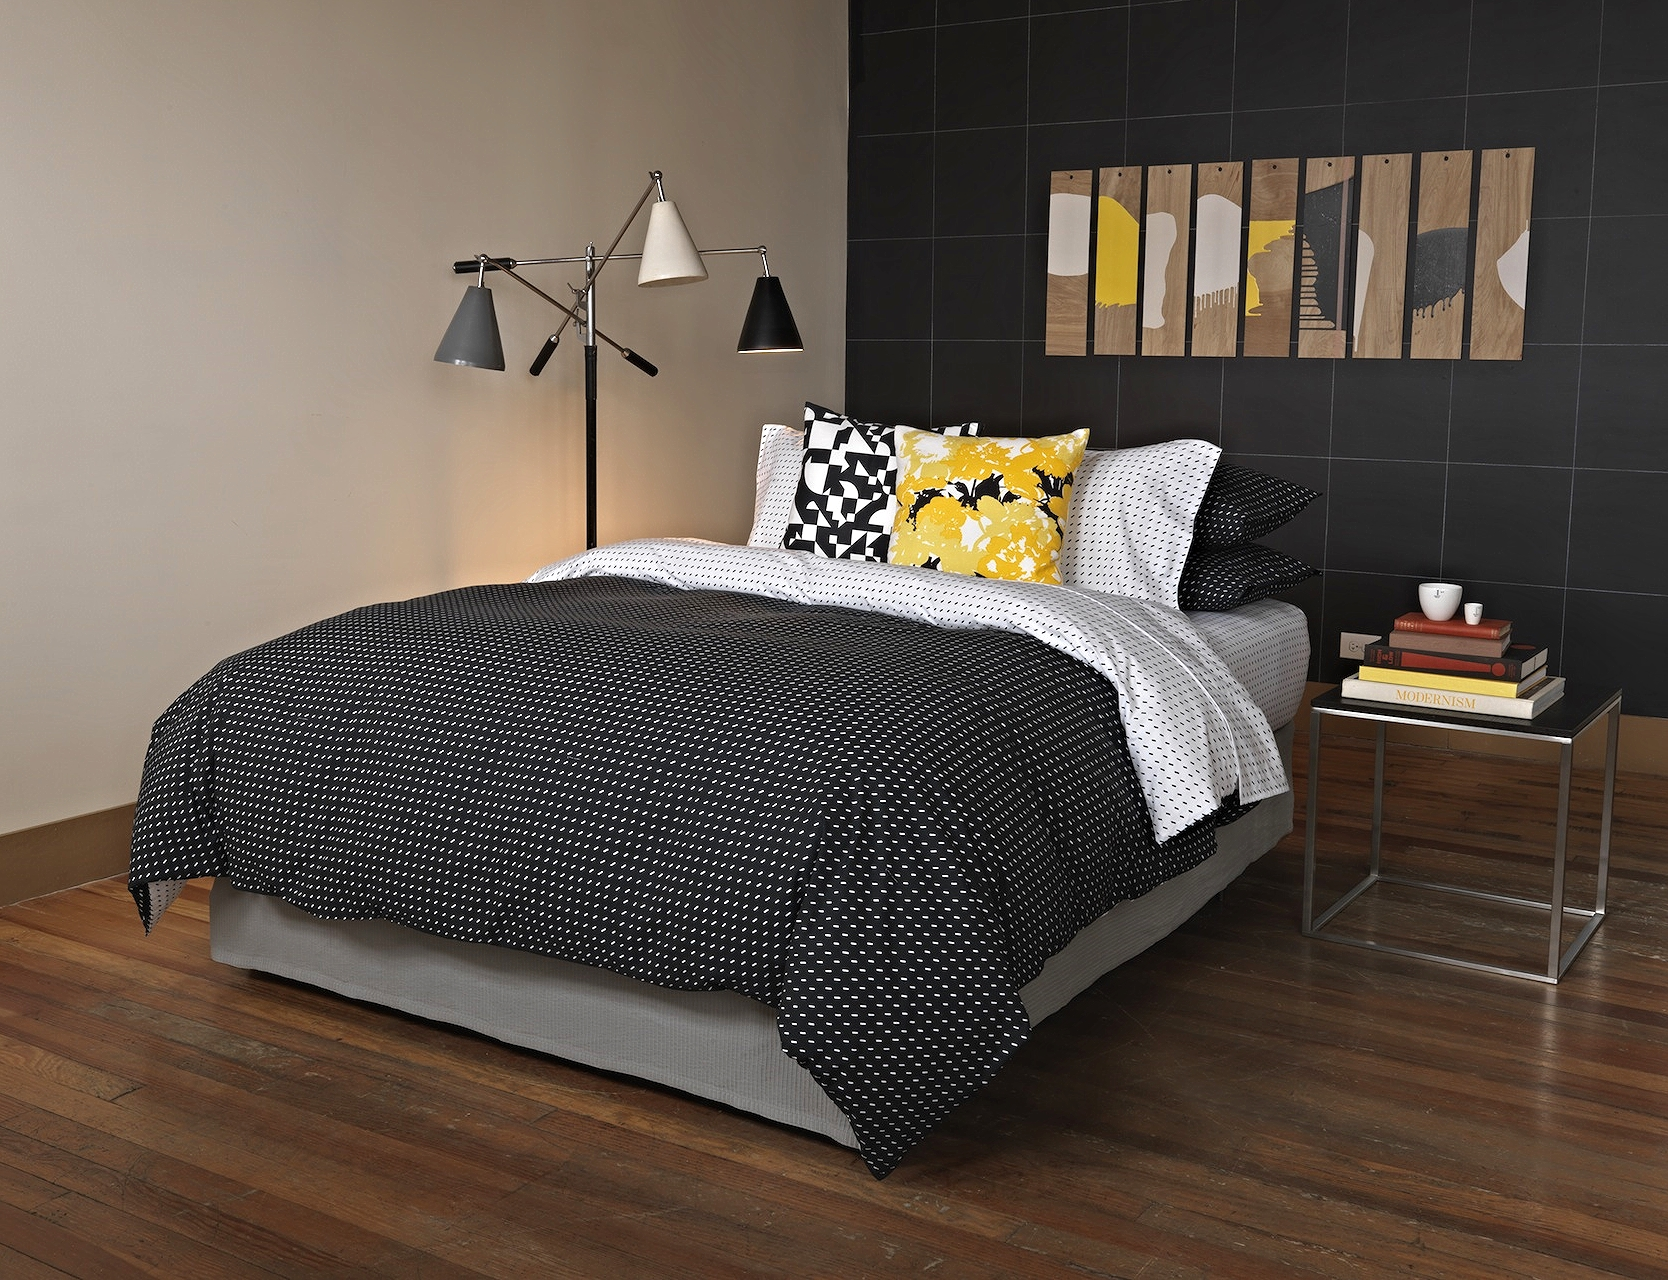 Stitch_BW_bedding_new.jpg